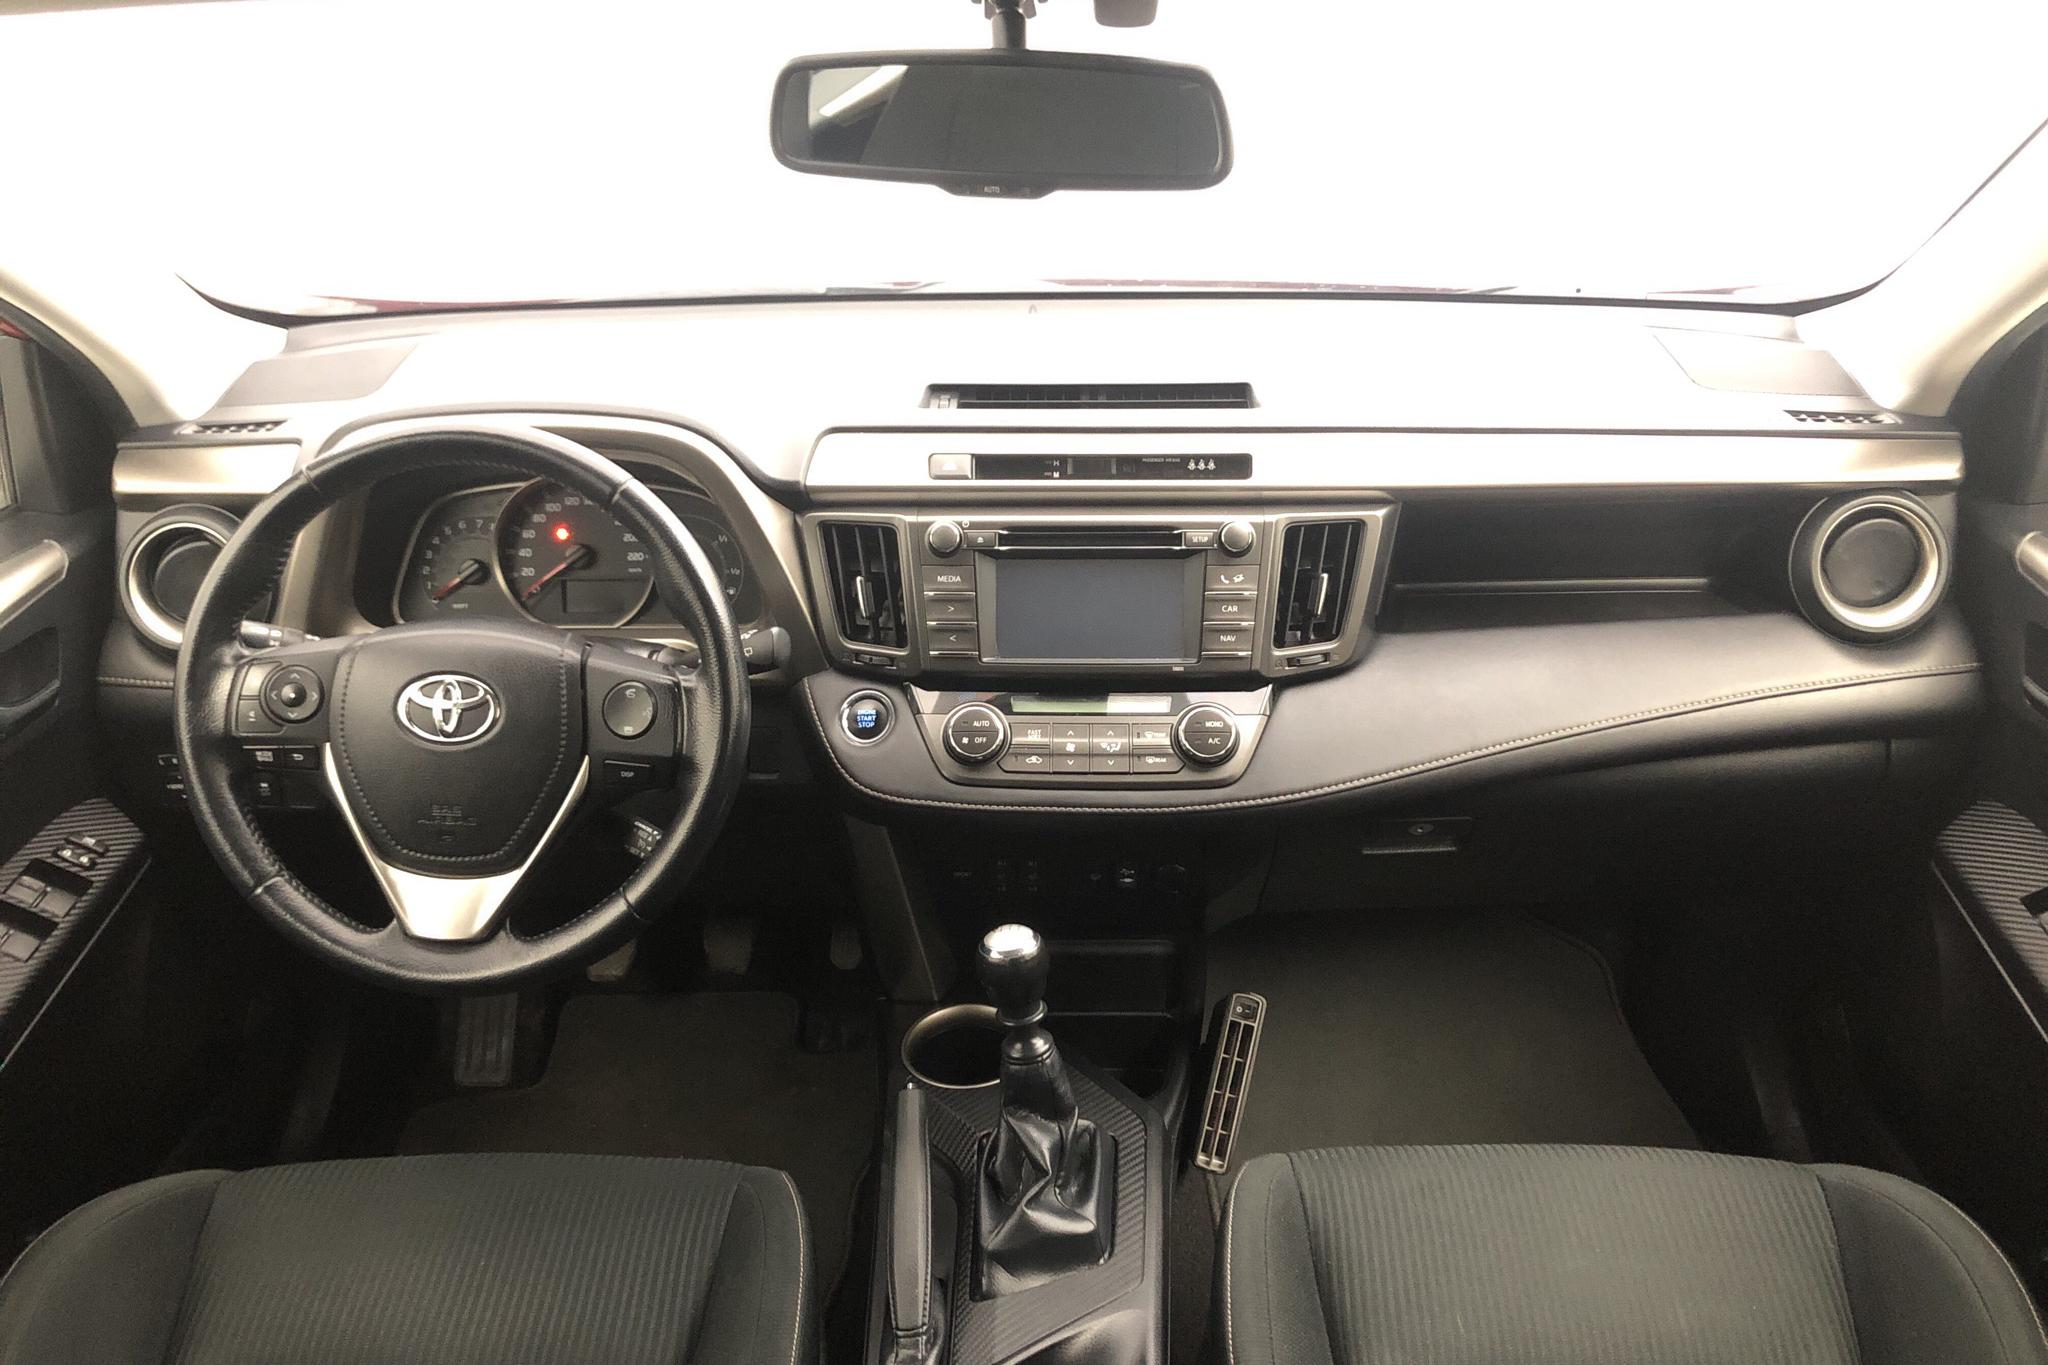 Toyota RAV4 2.0 VVT-i (151hk) - 174 070 km - Manual - Dark Red - 2014